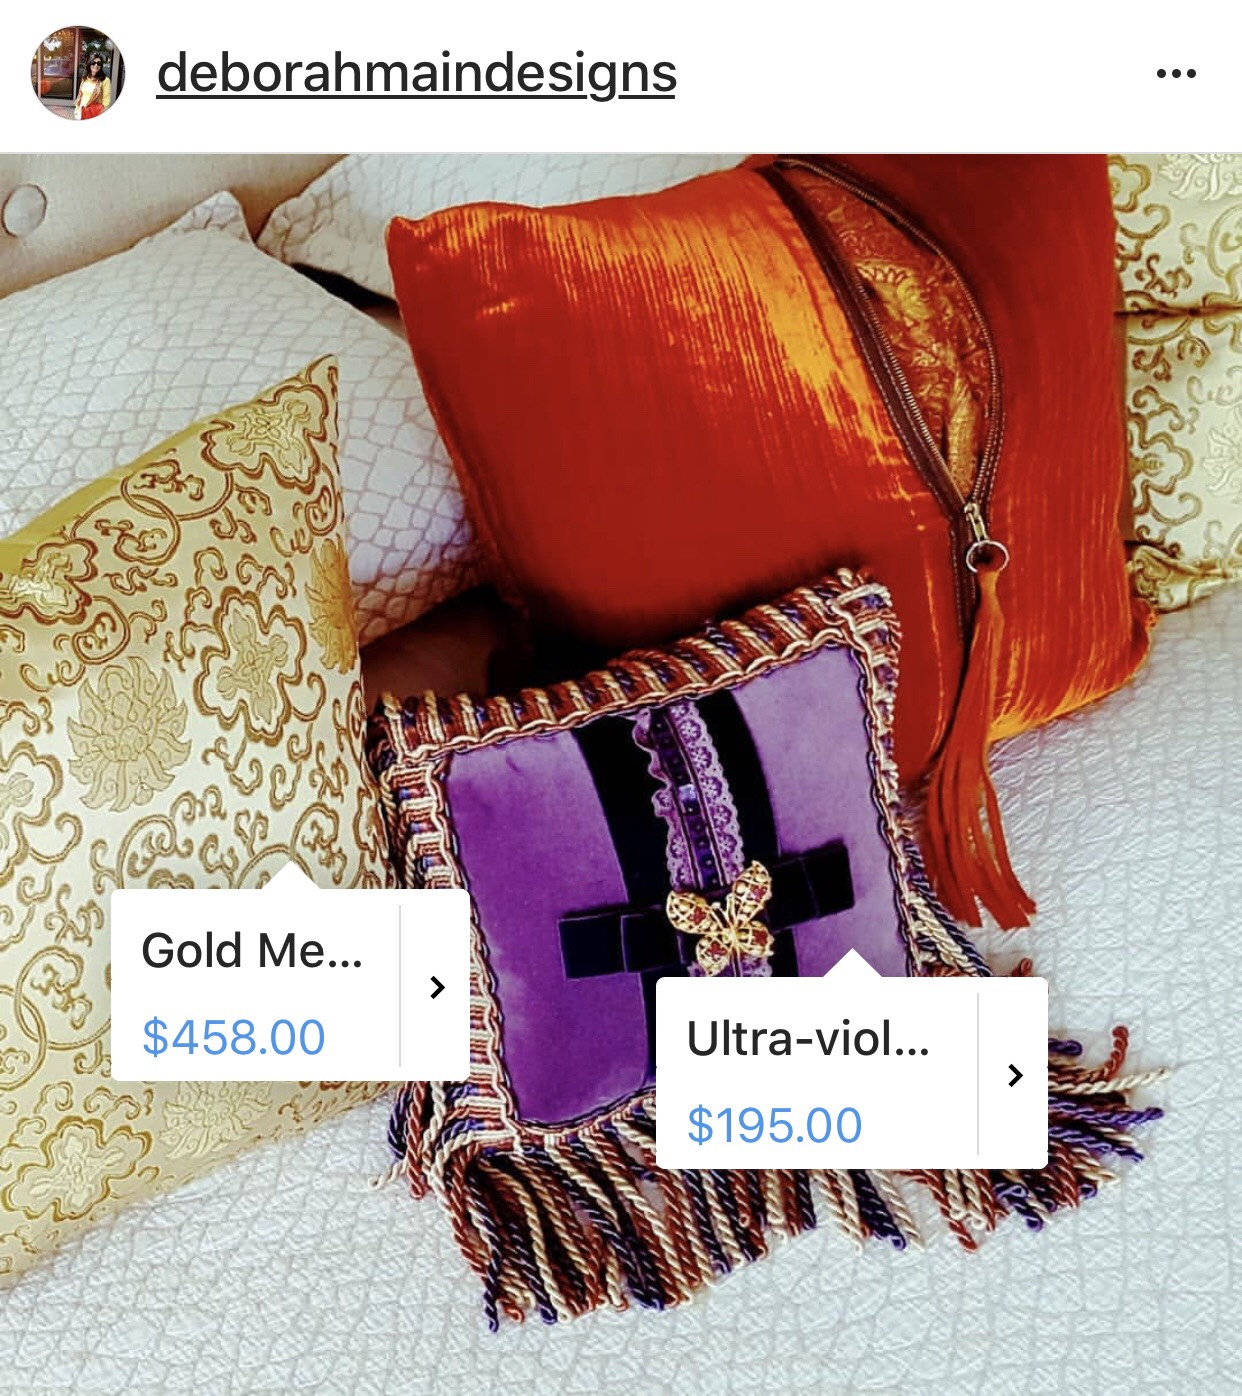 Screenshot 1, showing the product tags that Deborah has added to her luxury pillows on her Instagram feed at http://instagram.com/deborahmaindesigns.